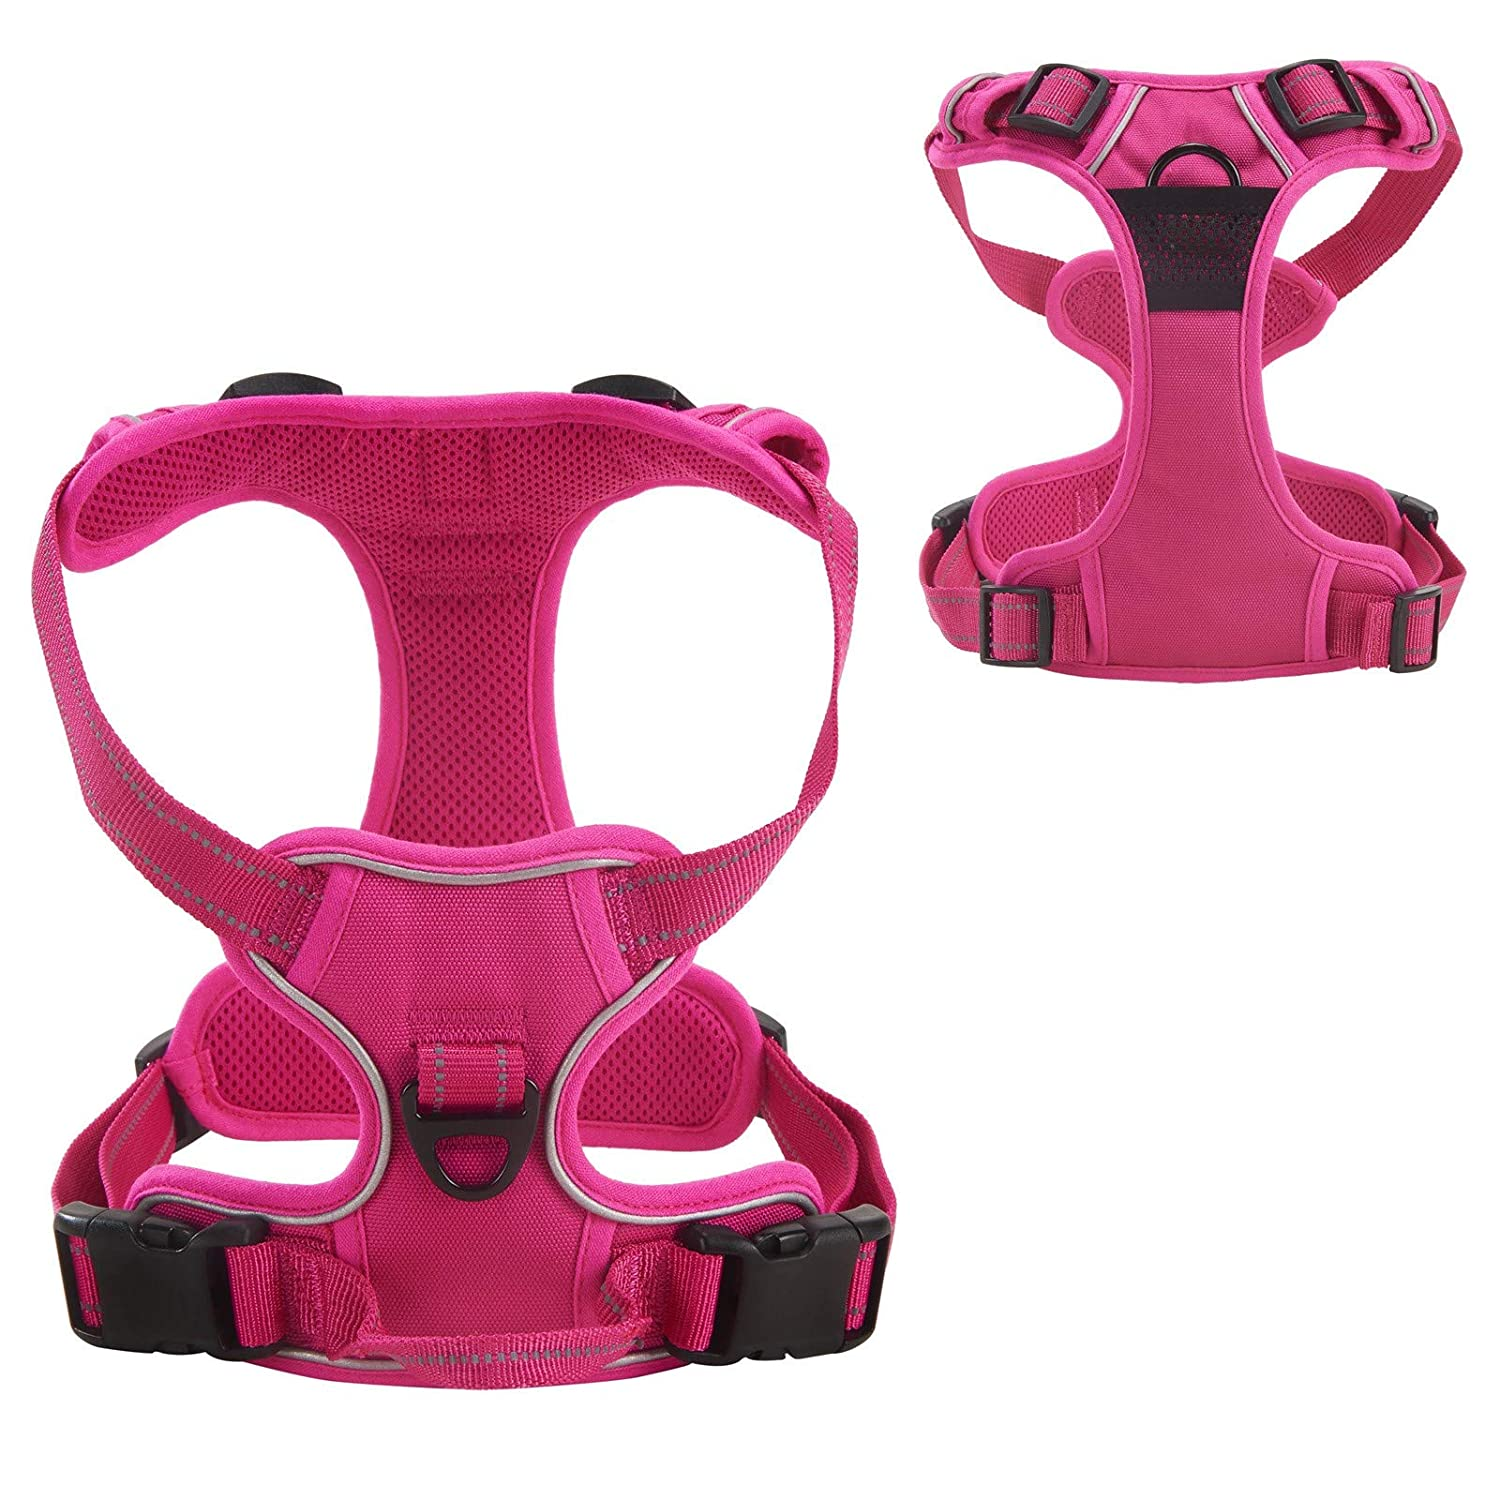 Louvra Dog Harness Small Heavy Duty Pet Dog Vest Harness with Handle Outdoor Adventure 3M Reflective No Pull Small Dog Harness for Puppy Dog Training or Walking S-M-L-XL(Pink,S)